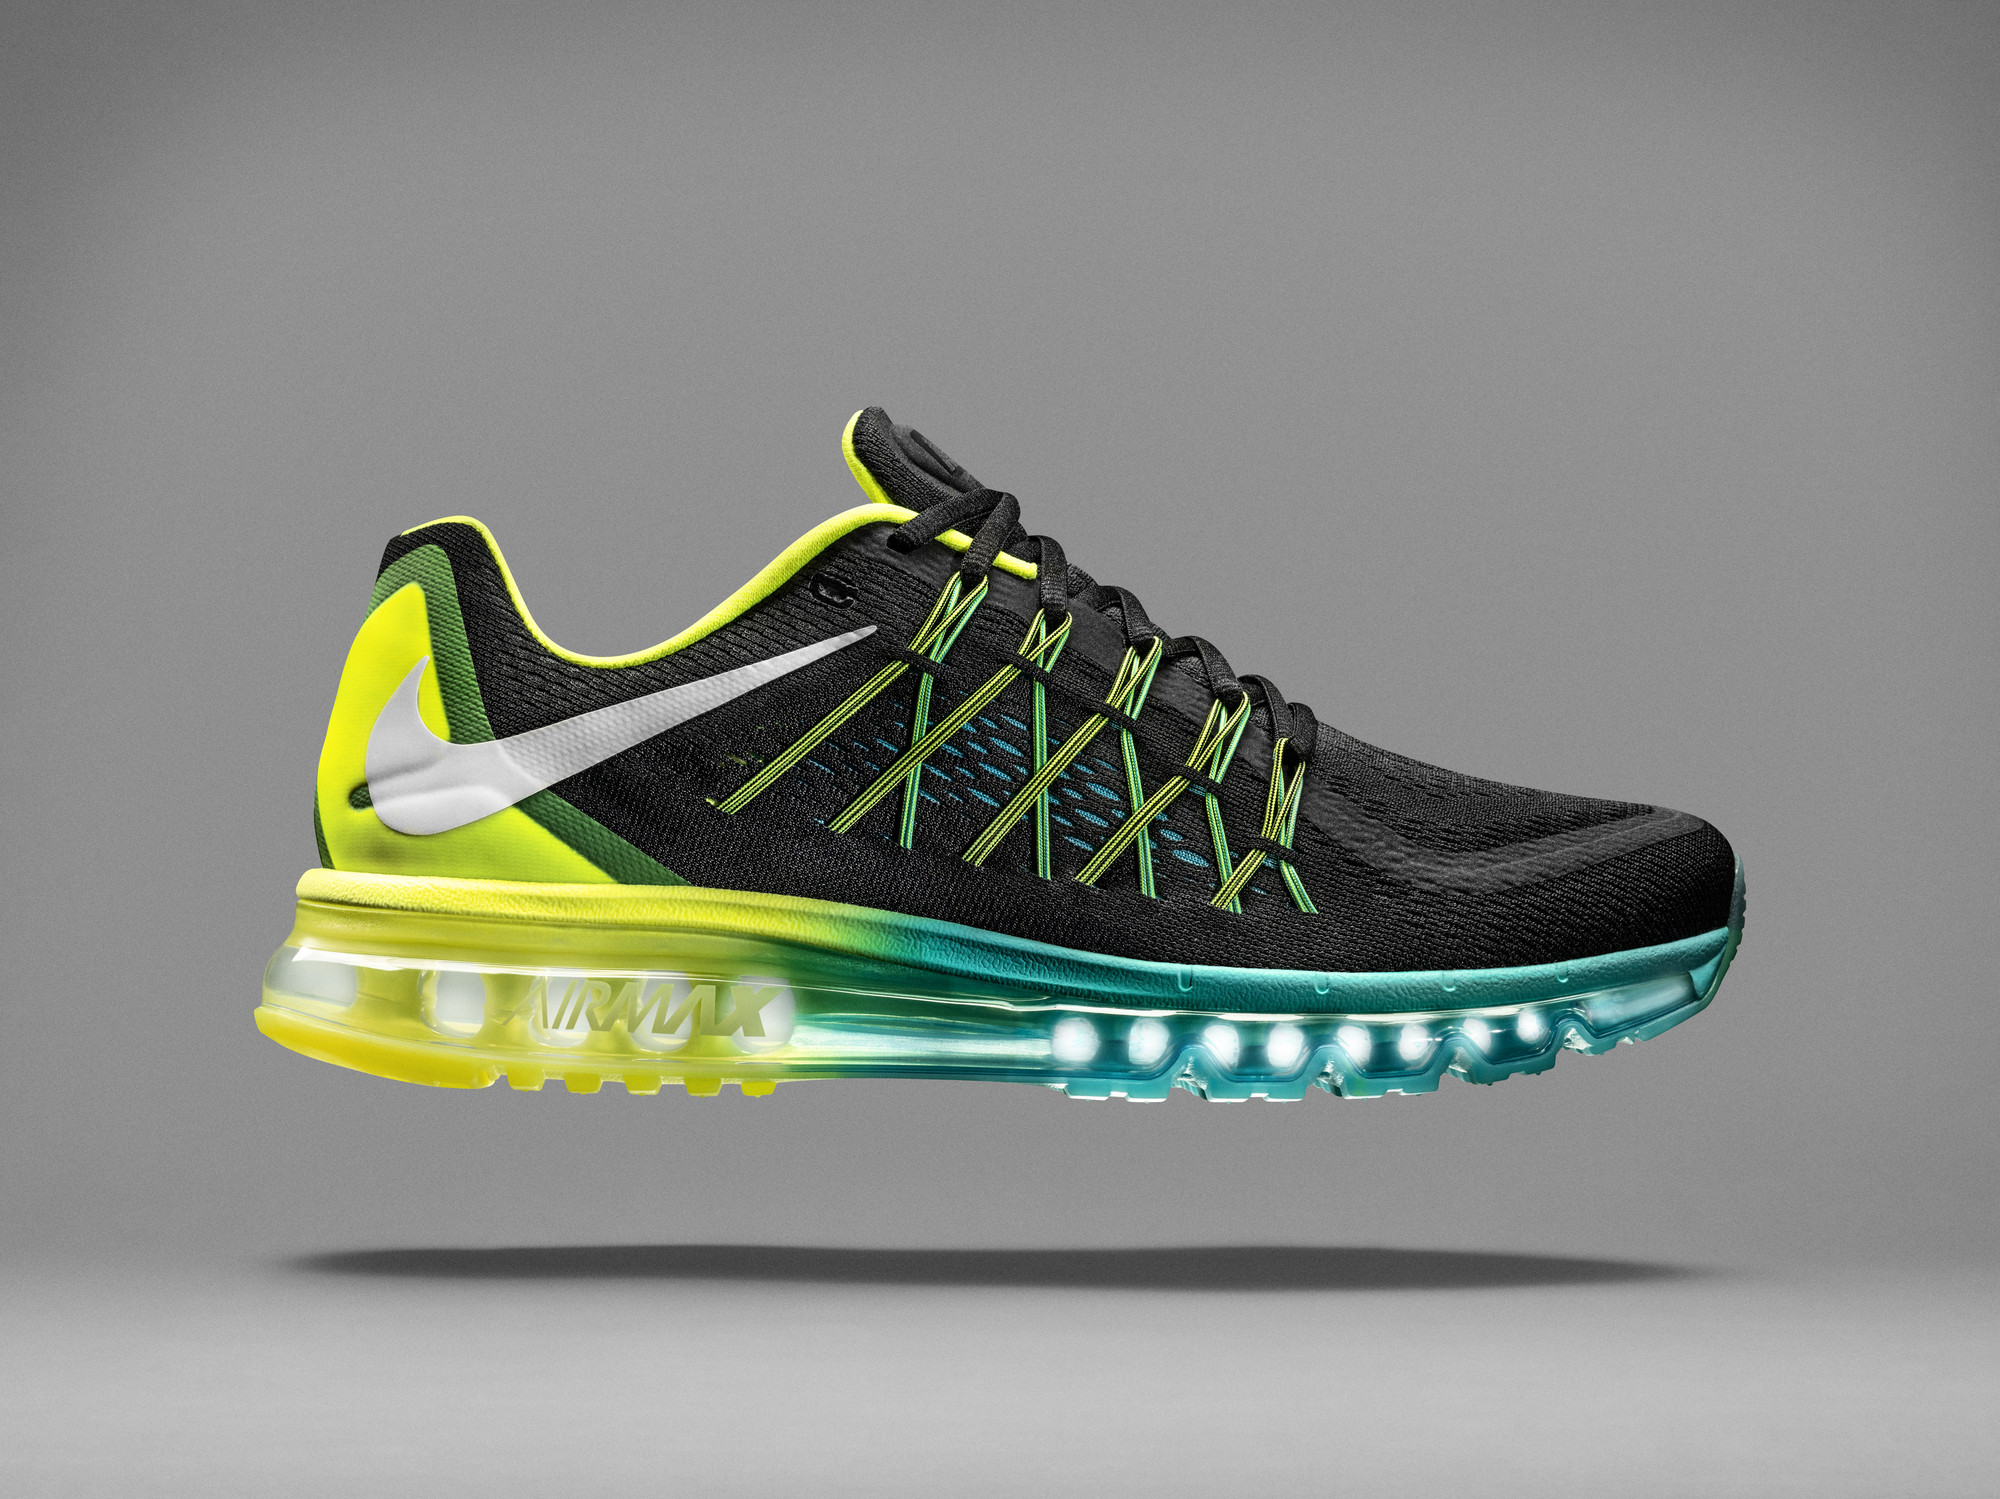 Nike Air Max 2015: Ultra-Soft Cushioning